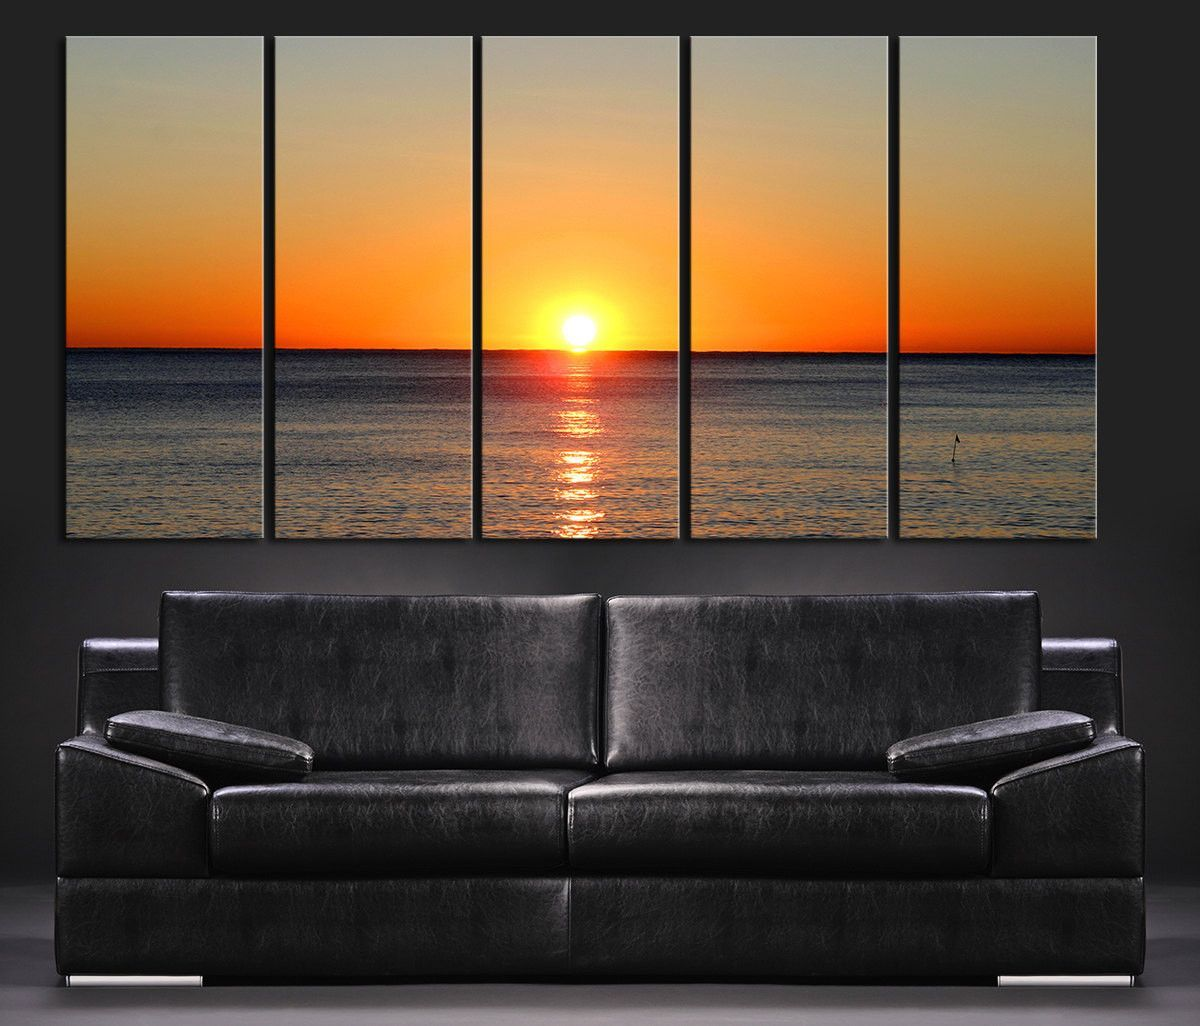 Large Wall Art Canvas Colorful Sunset On Sea Ocean Landscape Canvas Art Prints For Wall Sea View Large Canvas Wall Art Extra Large Wall Art Wall Art Canvas Prints